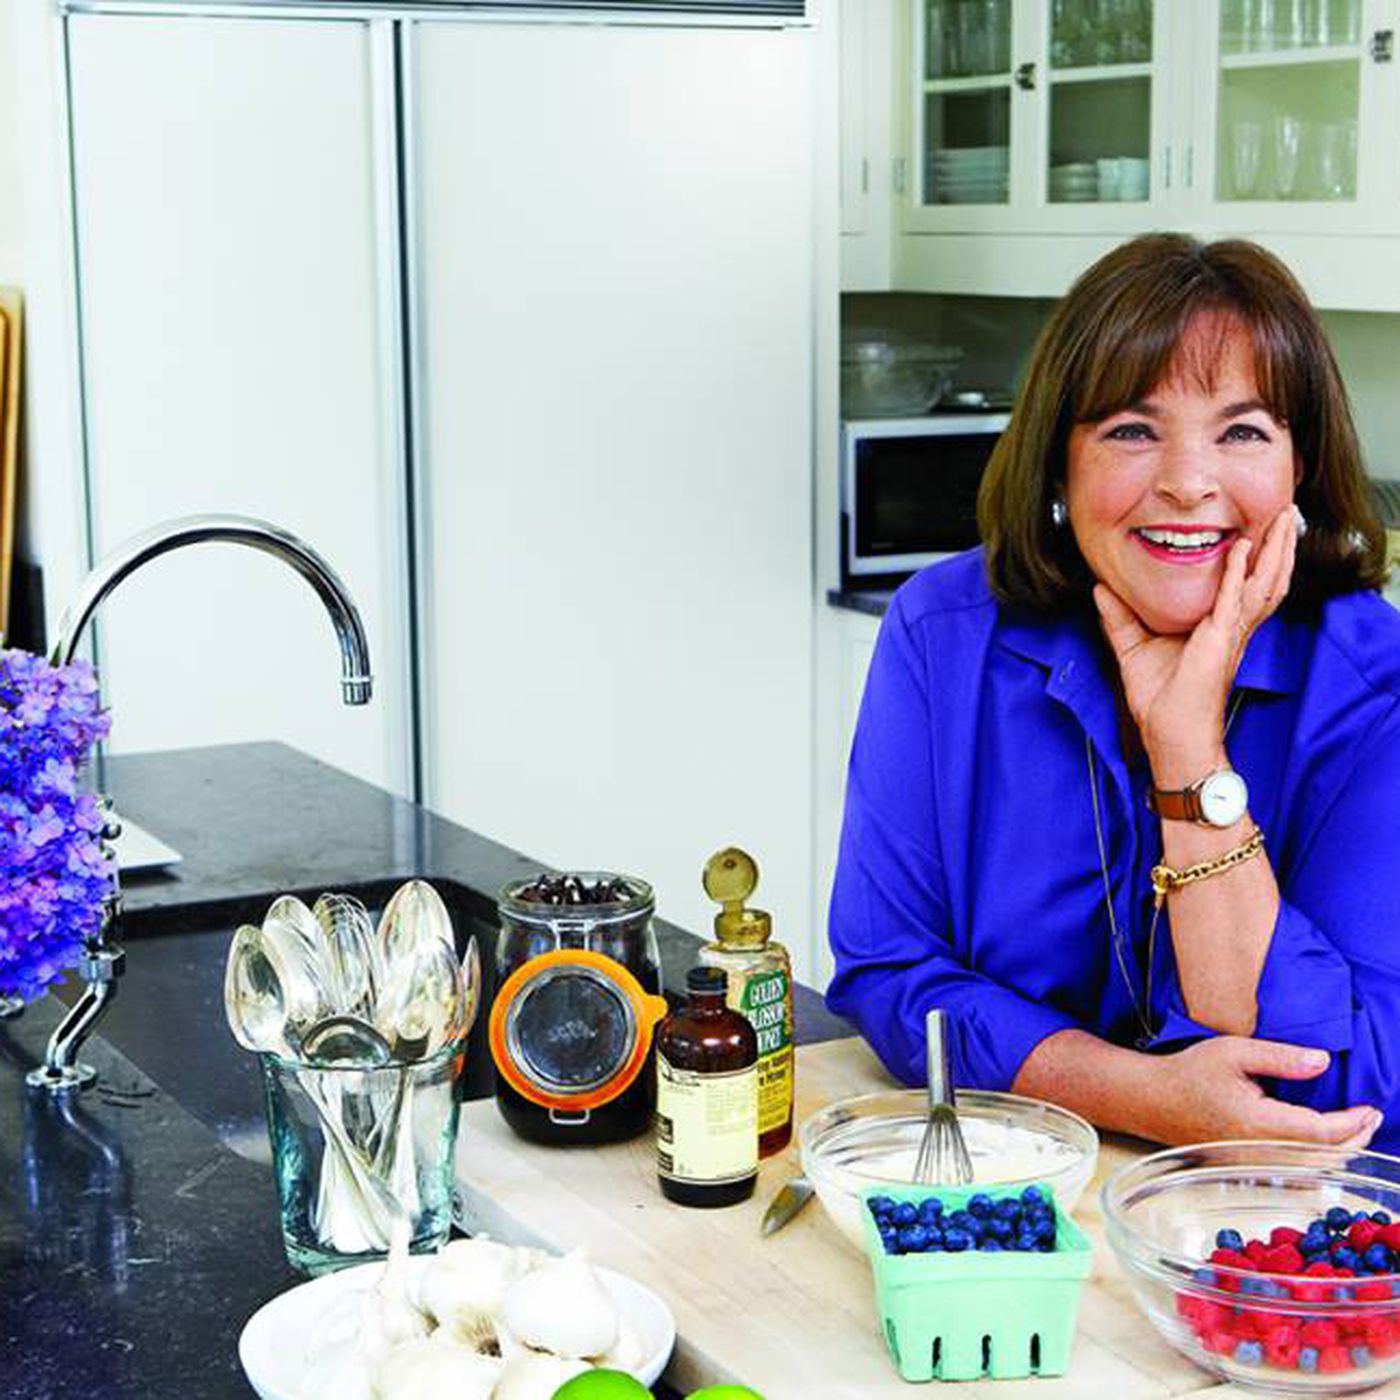 The New Season Of Barefoot Contessa Cook Like A Pro Airs October